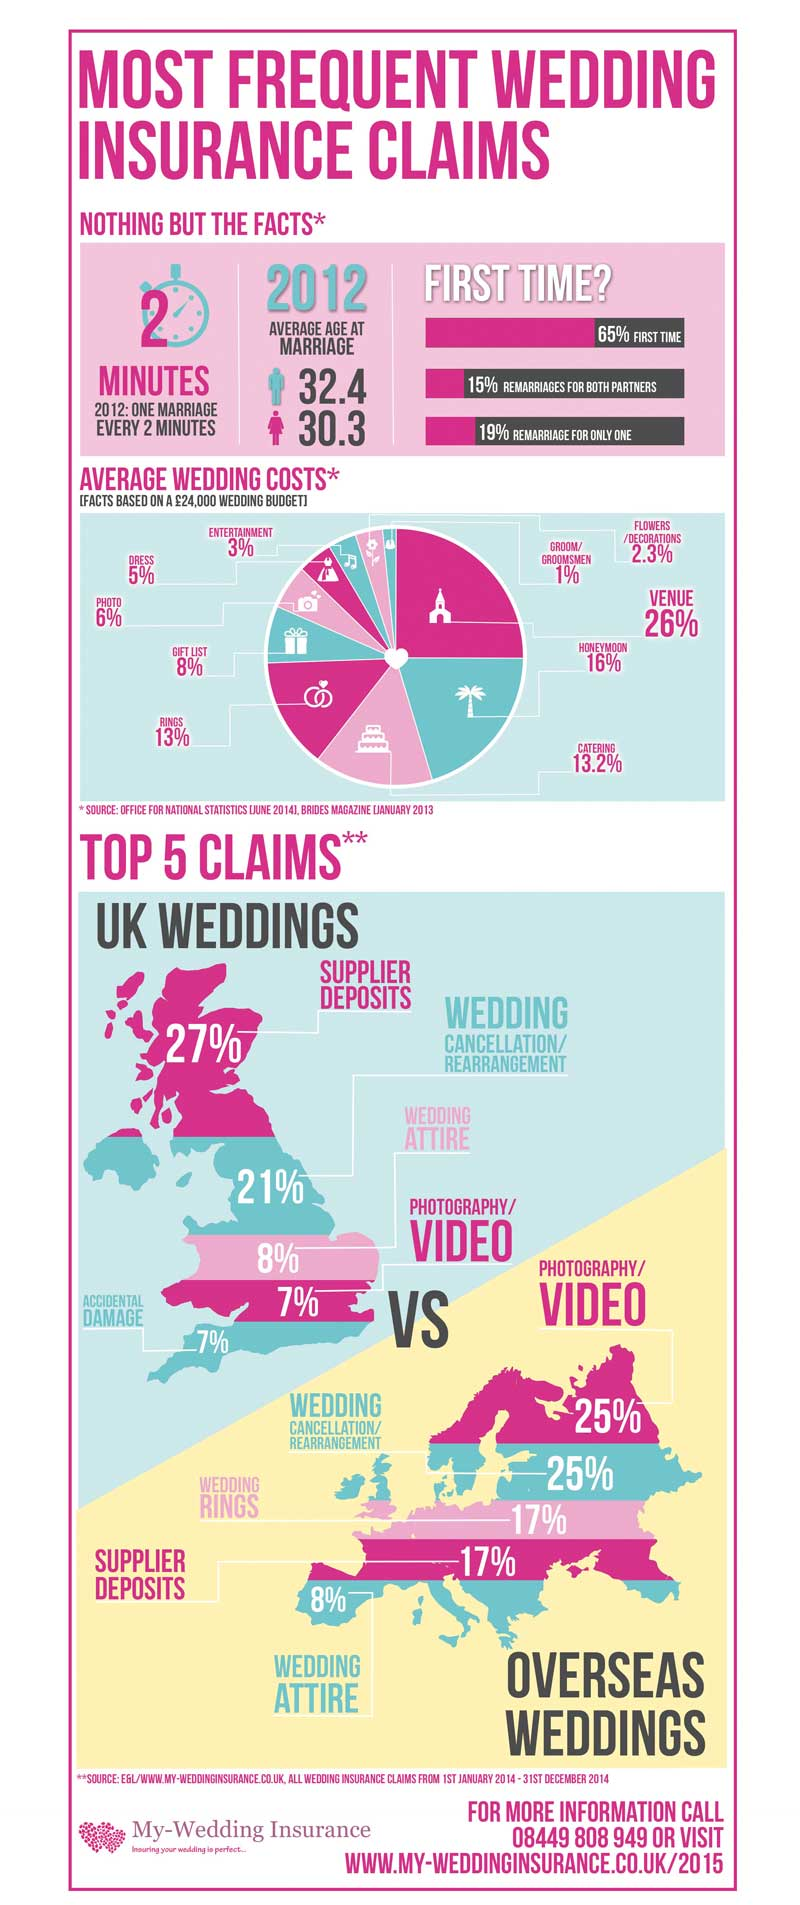 things-that-are-most-likely-to-go-wrong-on-your-wedding-day-MWI-infographic